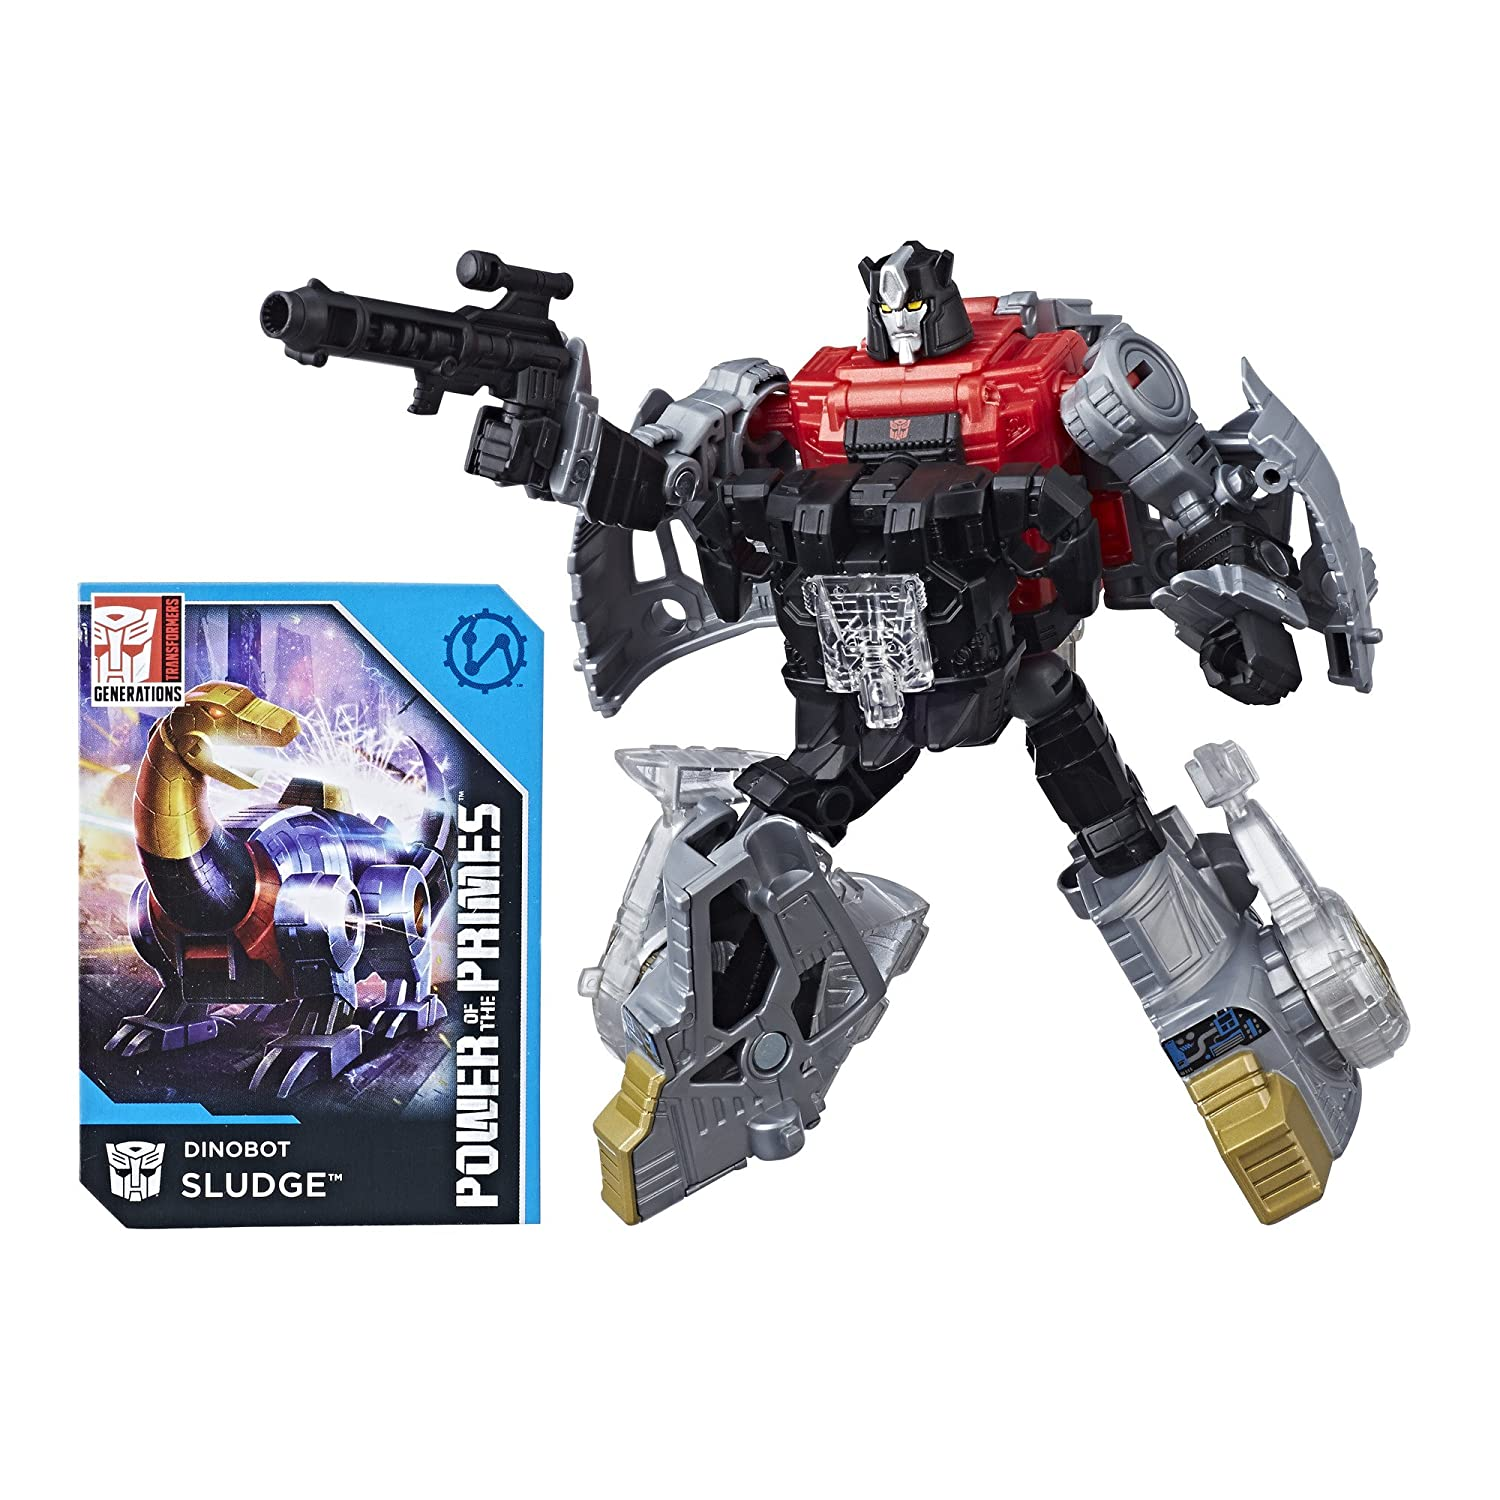 Transformers: Generations Power of the Primes Deluxe Class Dinobot Sludge Hasbro E1127